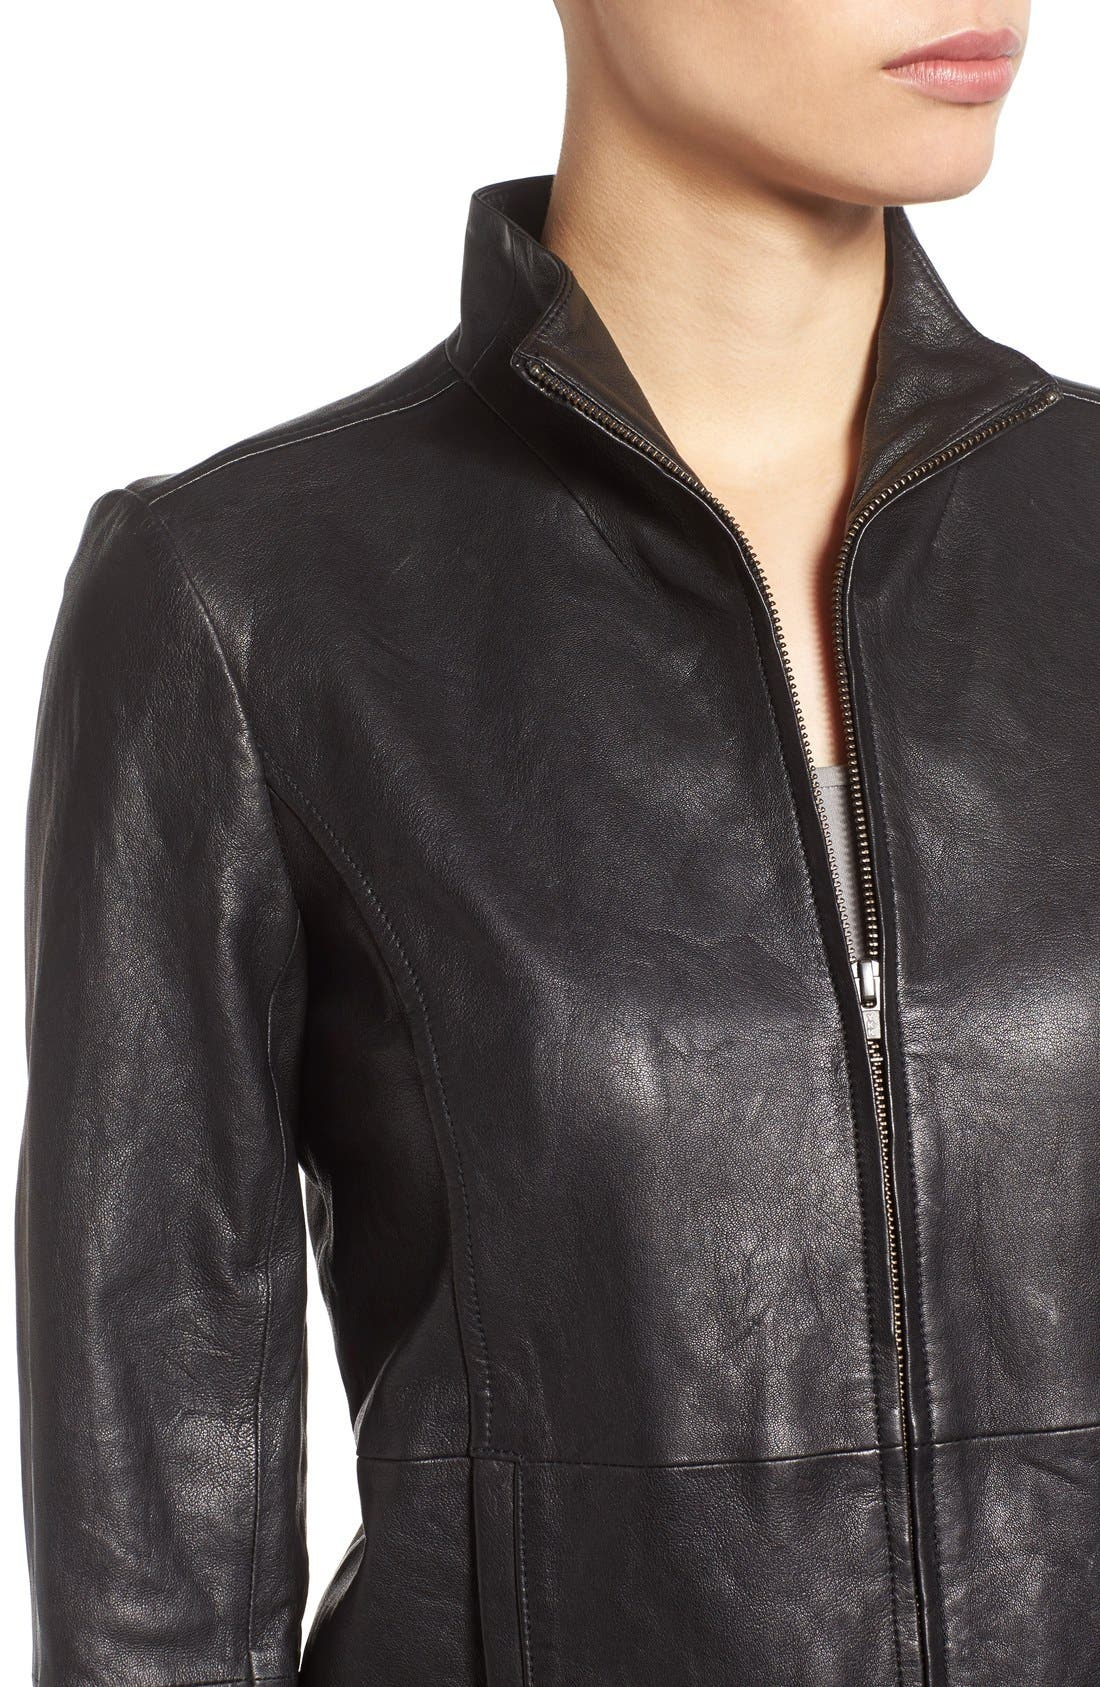 Rumpled Luxe Leather Stand Collar Jacket,                             Alternate thumbnail 5, color,                             001